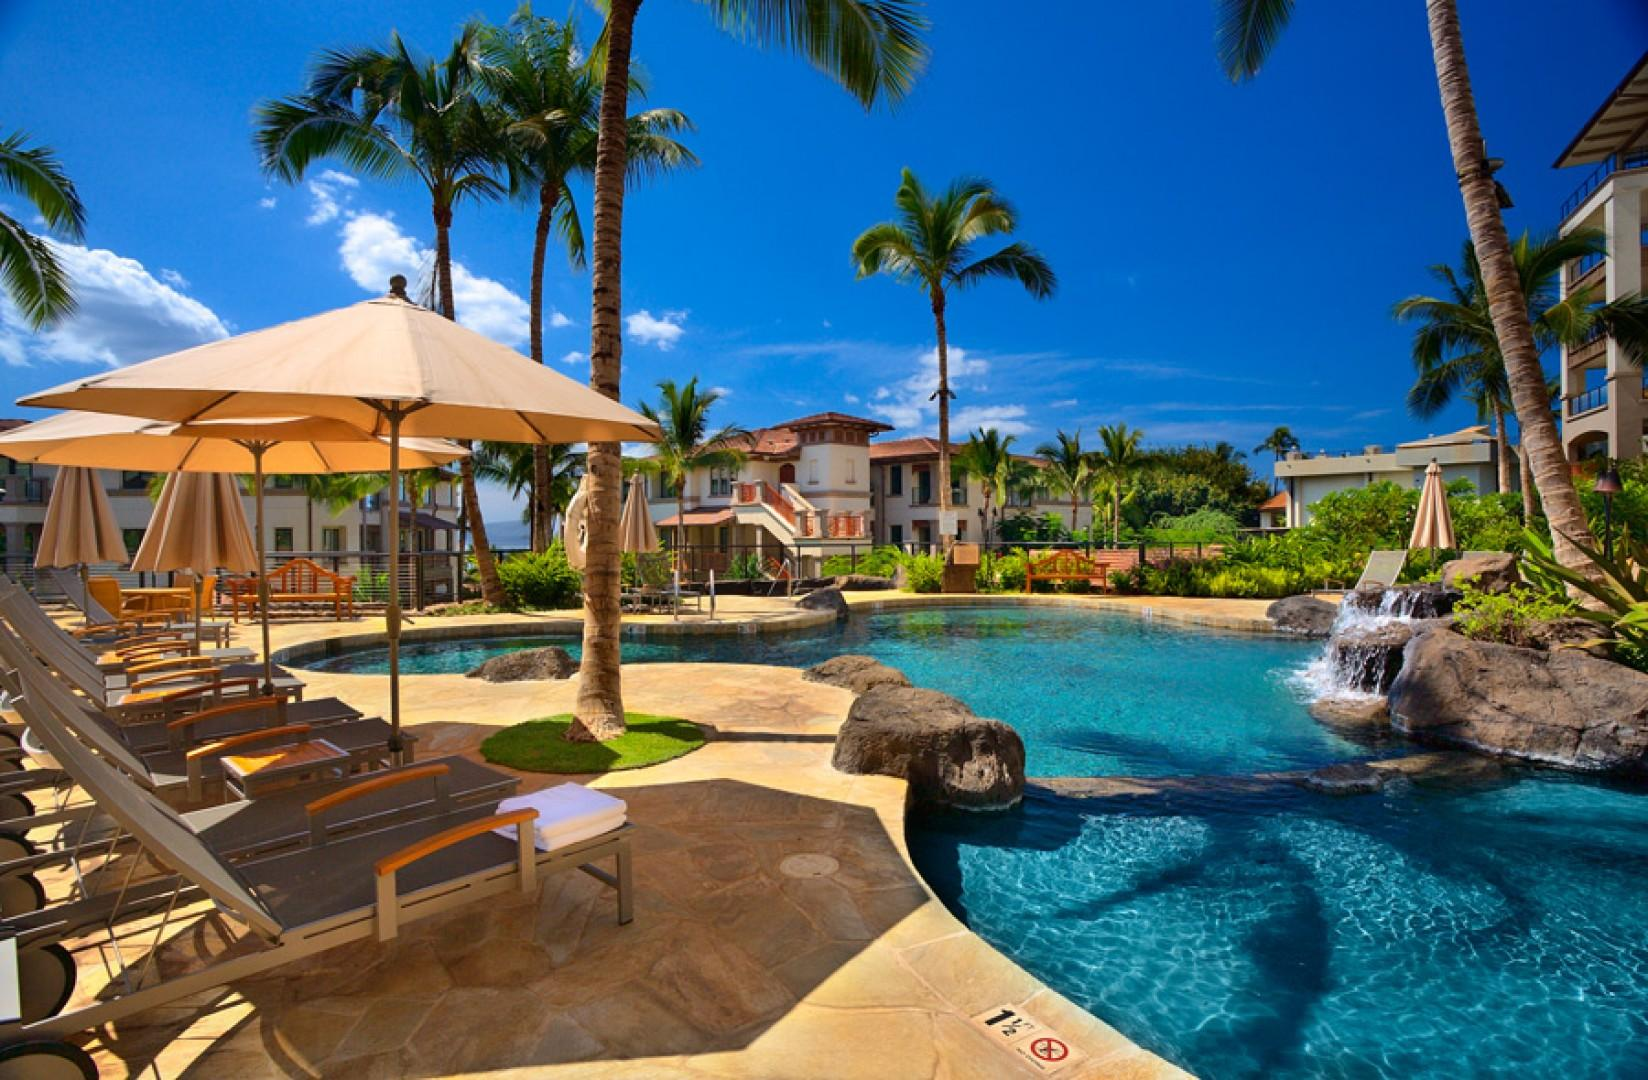 Upper Level Swimming Pool and Hot Tub for Children and Families (Under 18) set within the center courtyard of the Wailea Beach Villas